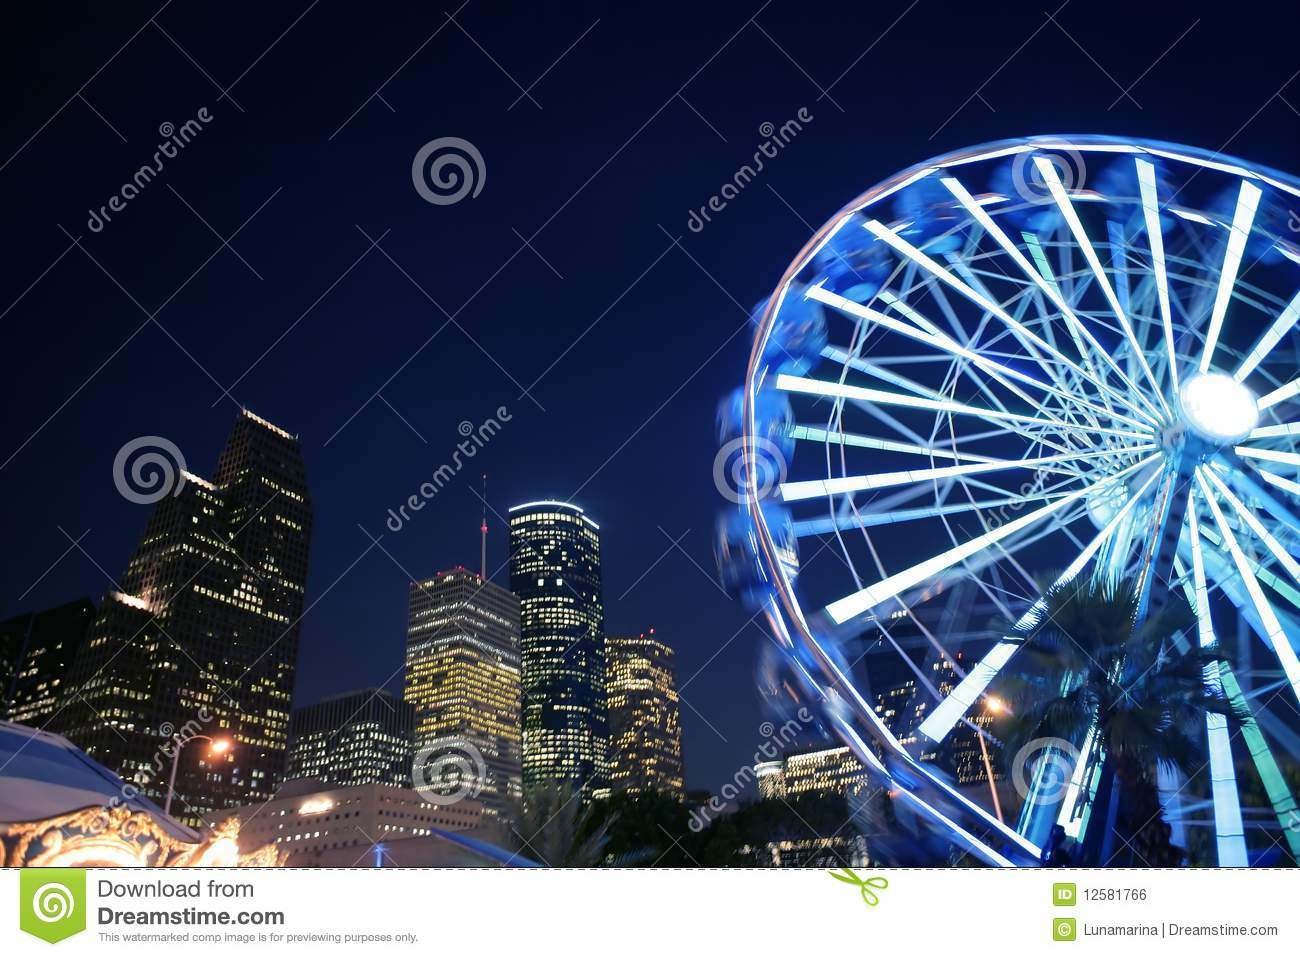 Ferris wheel at the fair night lights in Houston